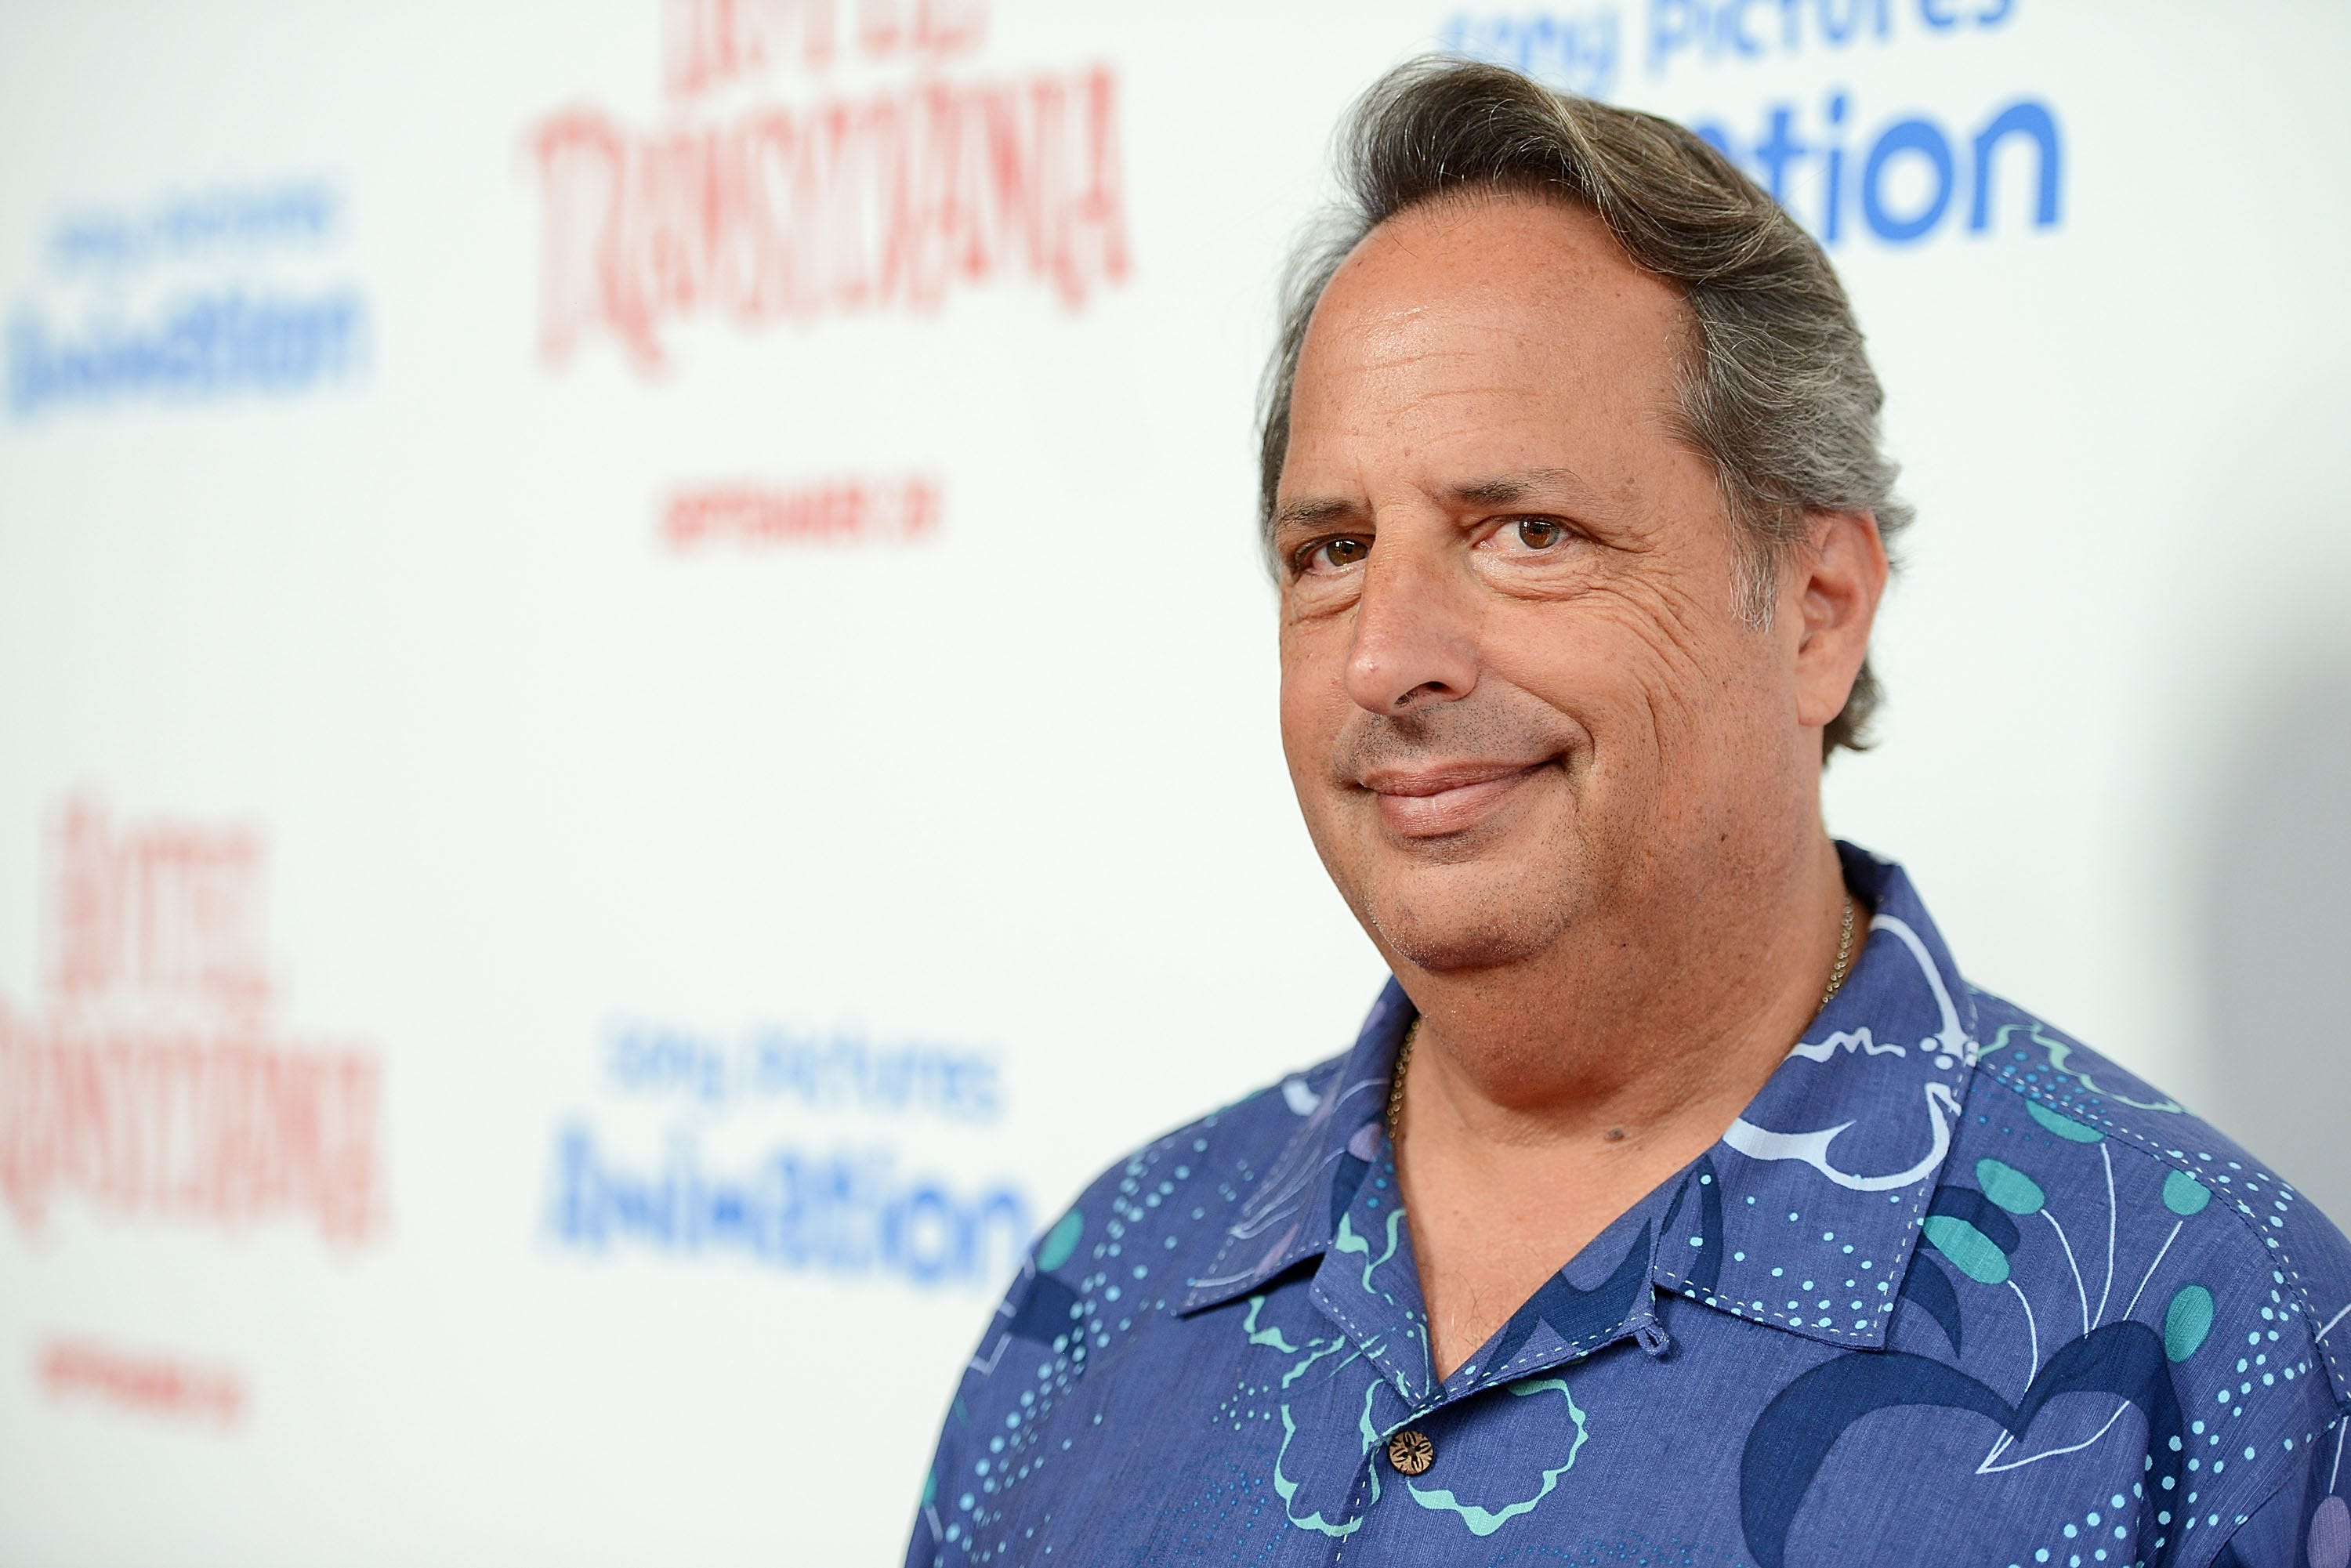 jon lovitz wedding singerjon lovitz net worth, jon lovitz gif, jon lovitz friends, jon lovitz acting, jon lovitz films, jon lovitz movies, jon lovitz wiki, jon lovitz died, jon lovitz dana carvey, jon lovitz and wife, jon lovitz instagram, jon lovitz little nicky, jon lovitz subway, jon lovitz dead, jon lovitz jessica lowndes, jon lovitz comedy club, jon lovitz wedding singer, jon lovitz simpsons, jon lovitz ladies night, jon lovitz twitter